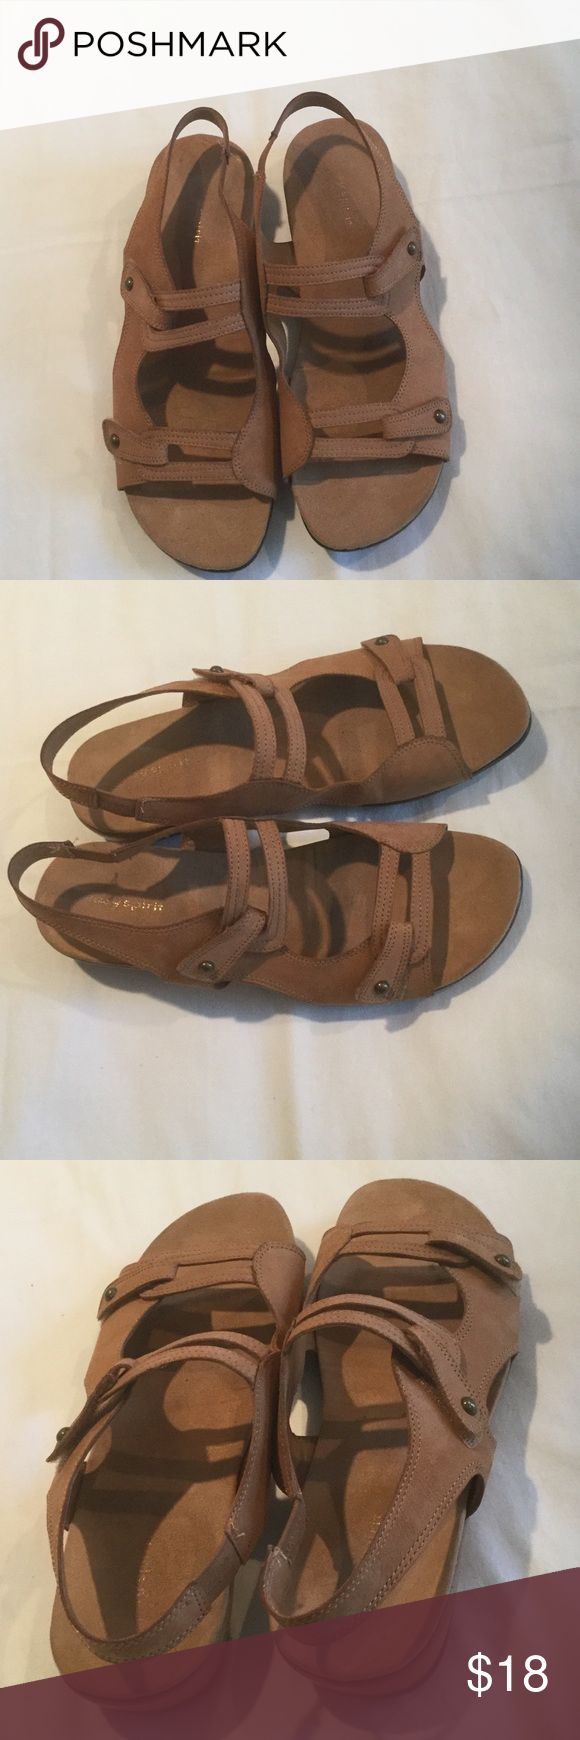 Easy Spirit Sandals Used but in good condition size 10M (ran wide) leather upper Sandals. Very soft and comfortable. From smoke free home. Offers welcome Easy Spirit Shoes